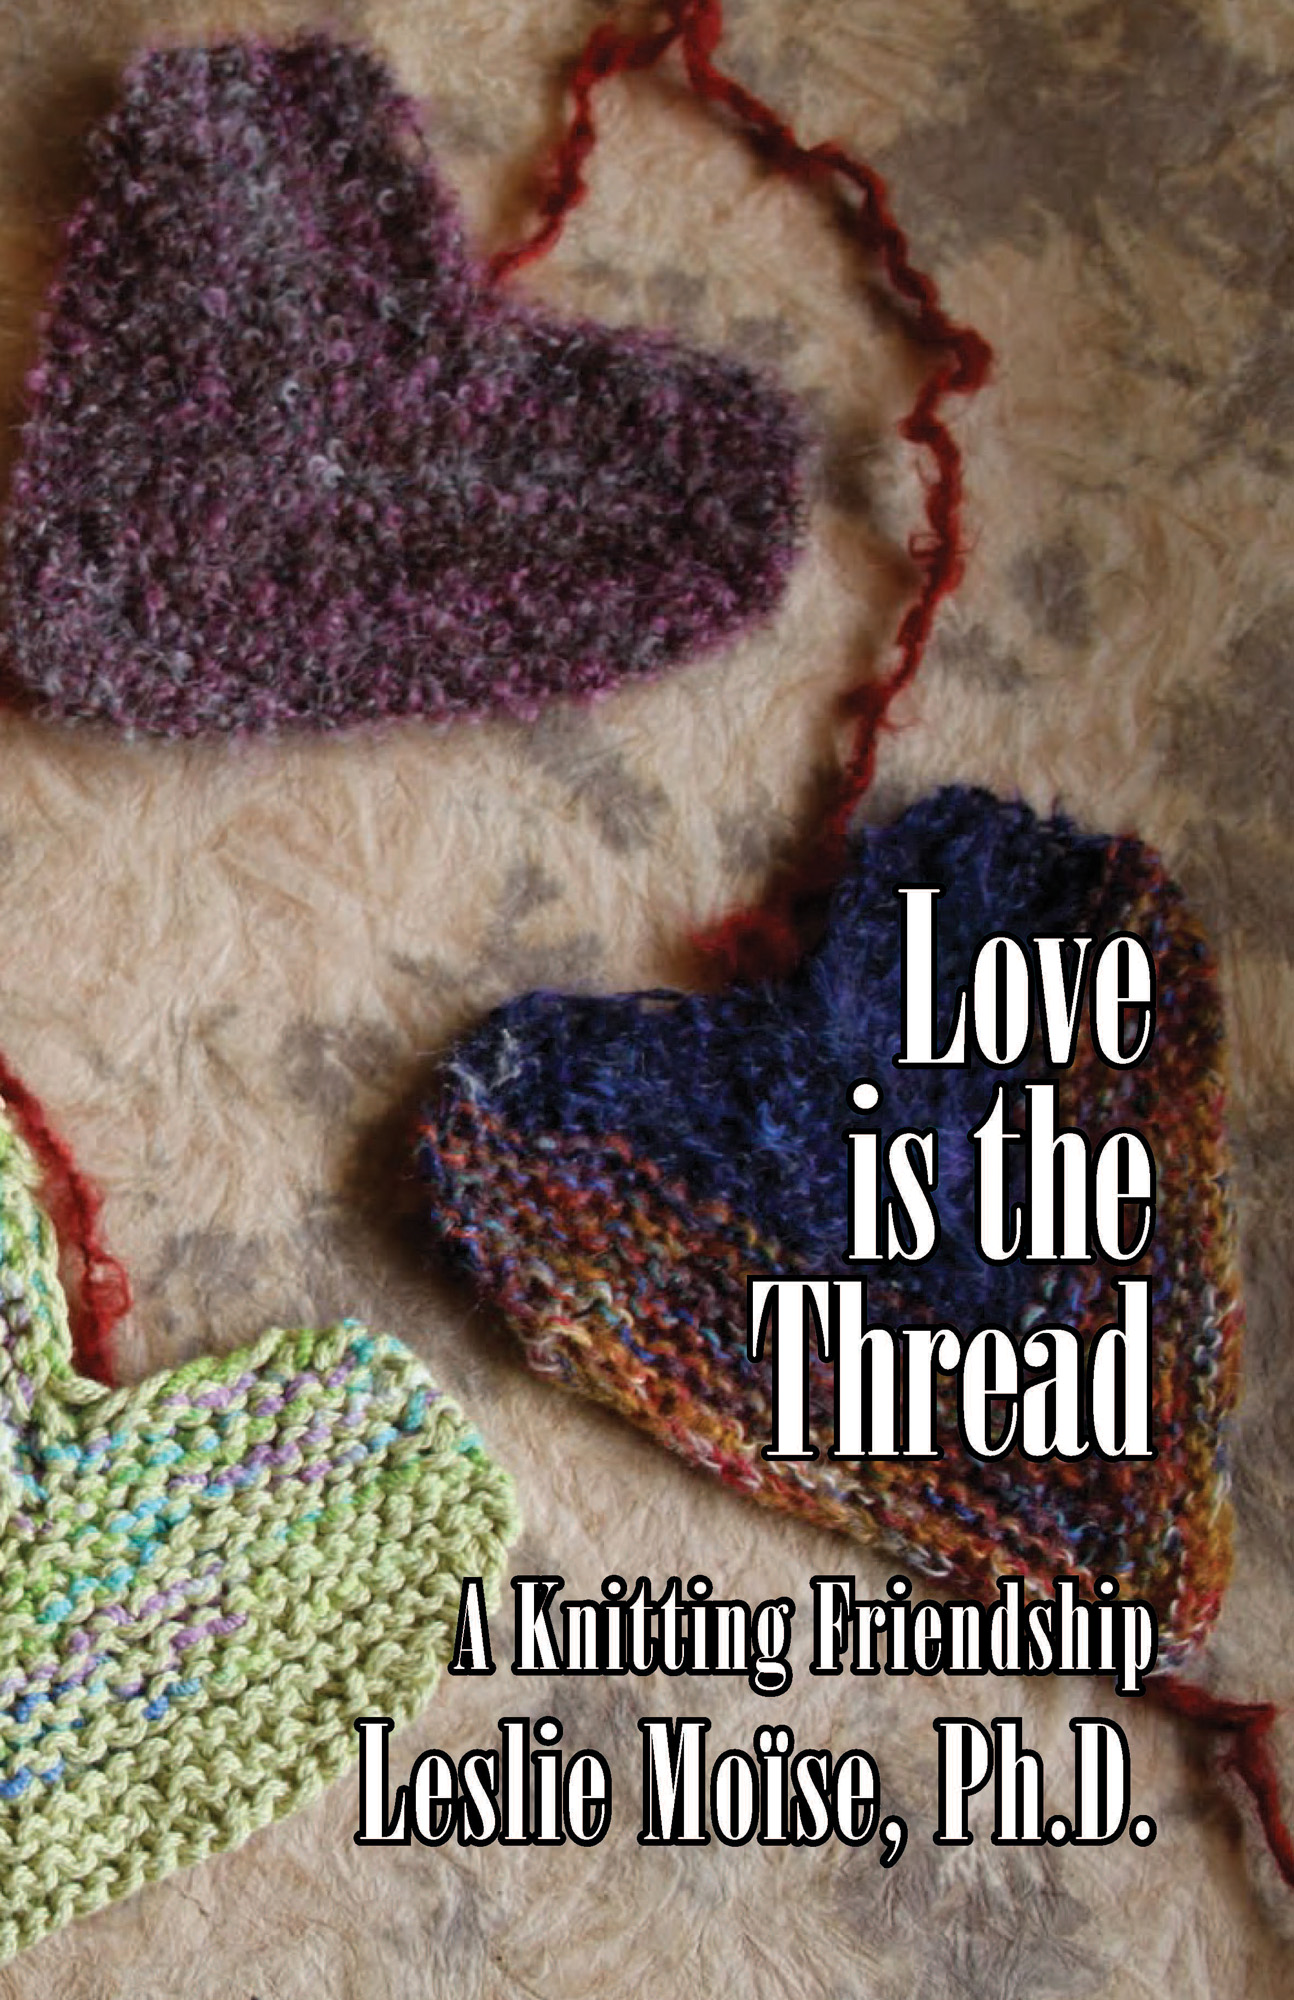 Love is the Thread: A Knitting Friendship by Leslie Moïse, Ph.D.